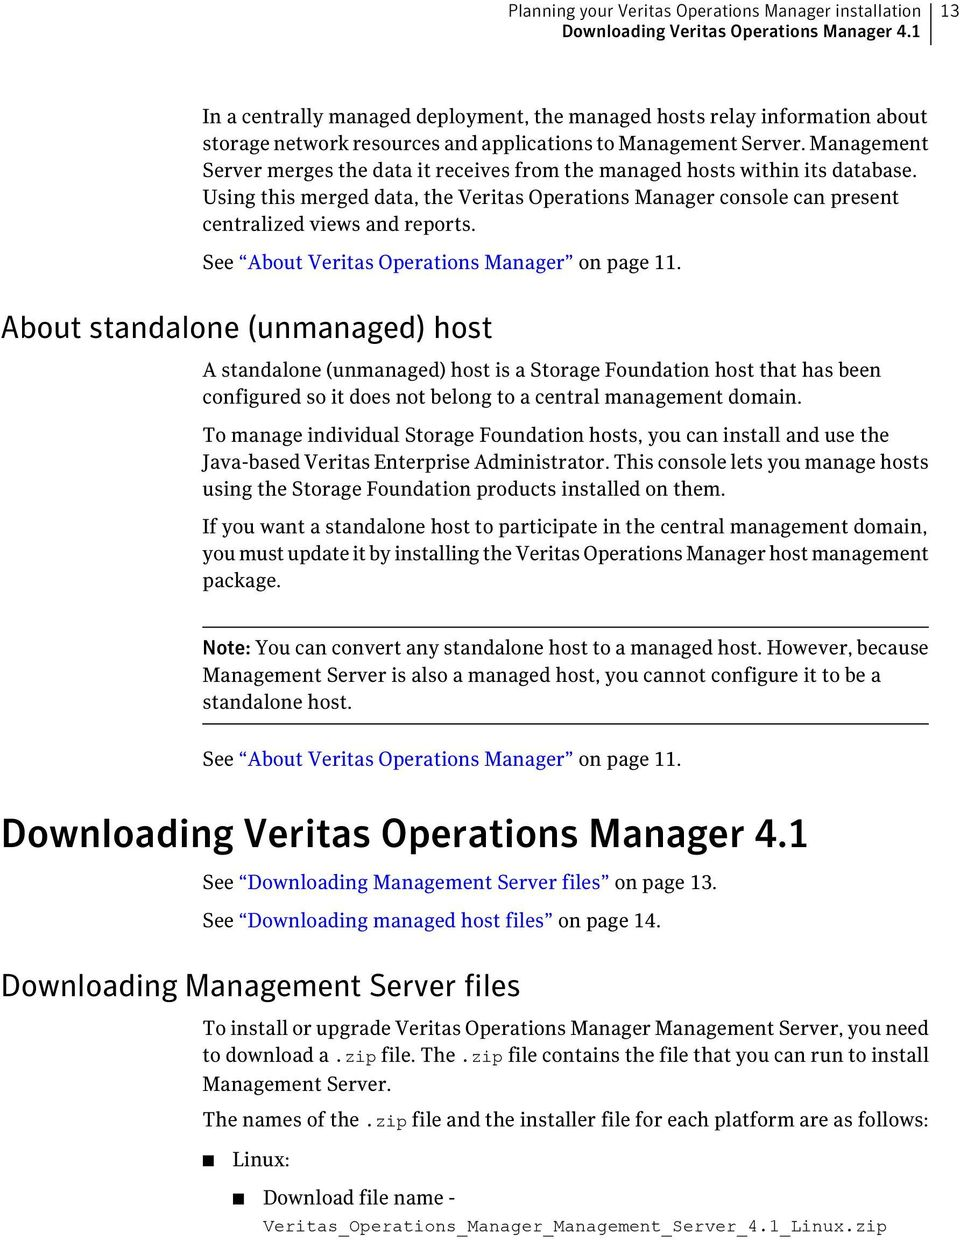 Management Server merges the data it receives from the managed hosts within its database. Using this merged data, the Veritas Operations Manager console can present centralized views and reports.